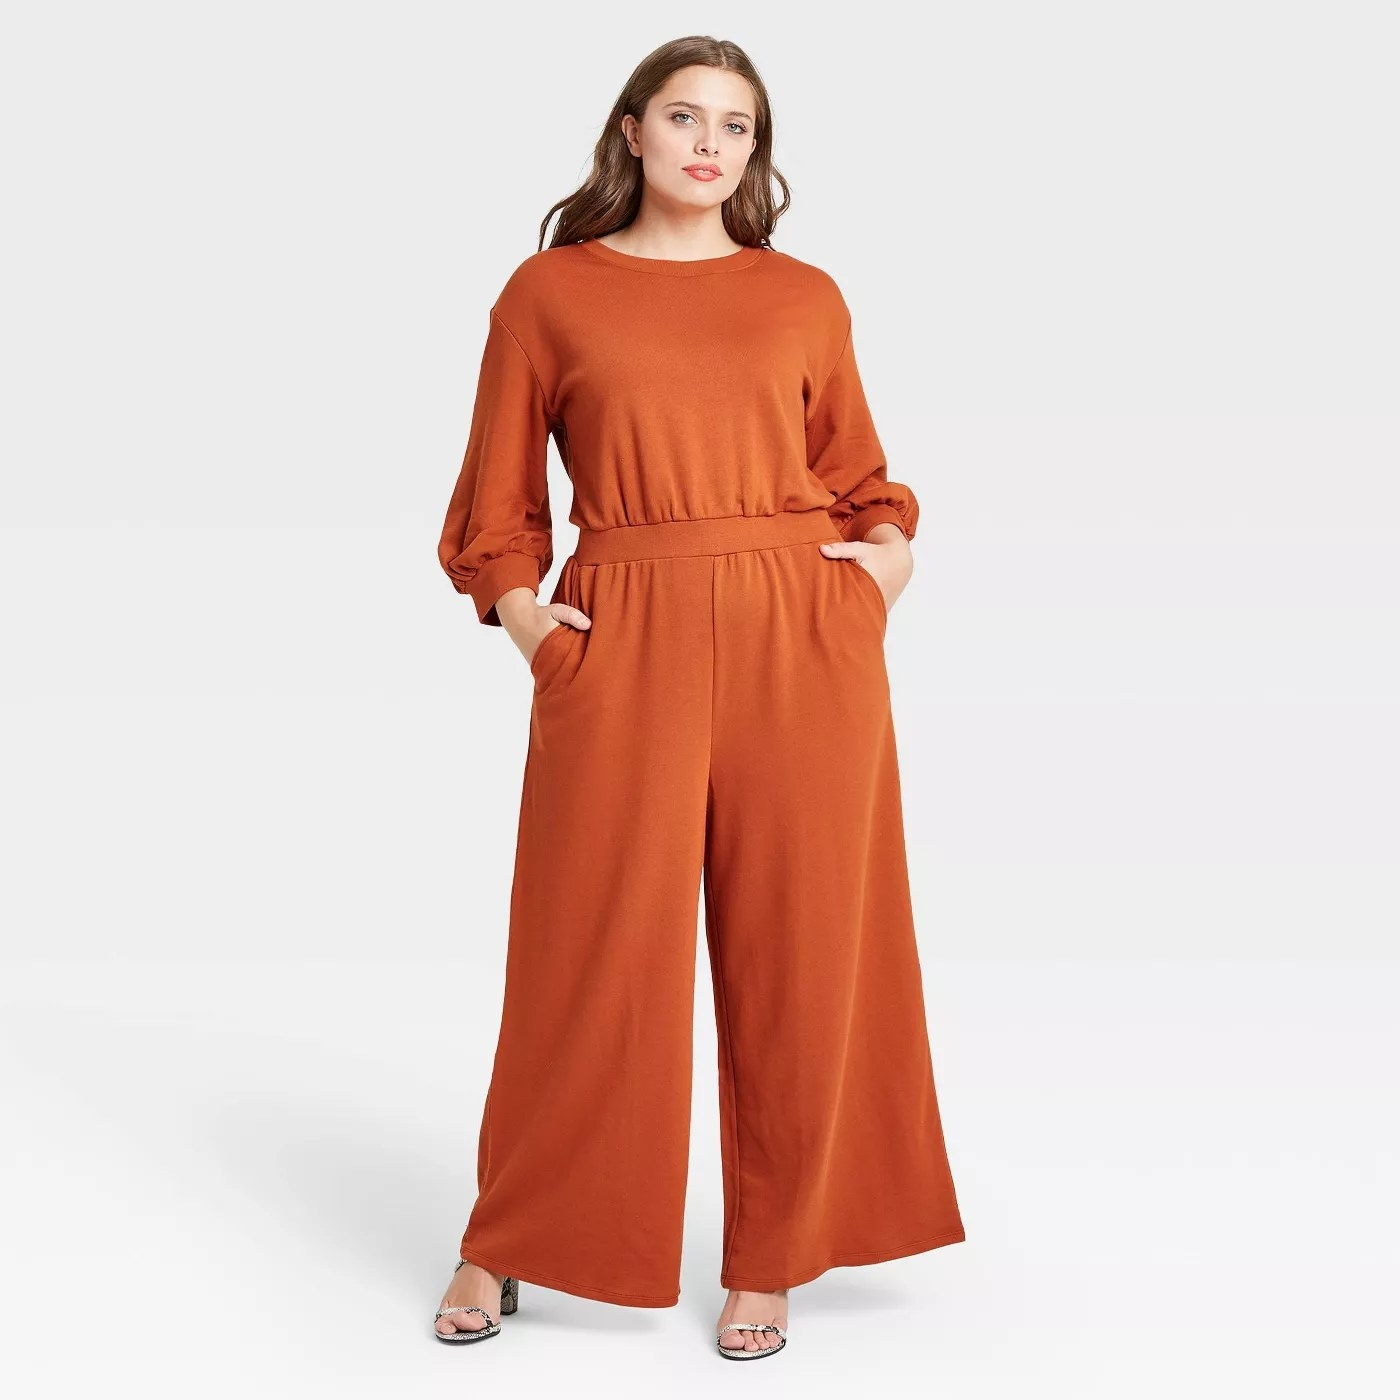 Orange cotton jumpsuit with a stitched waist. This is paired with open toe heels.